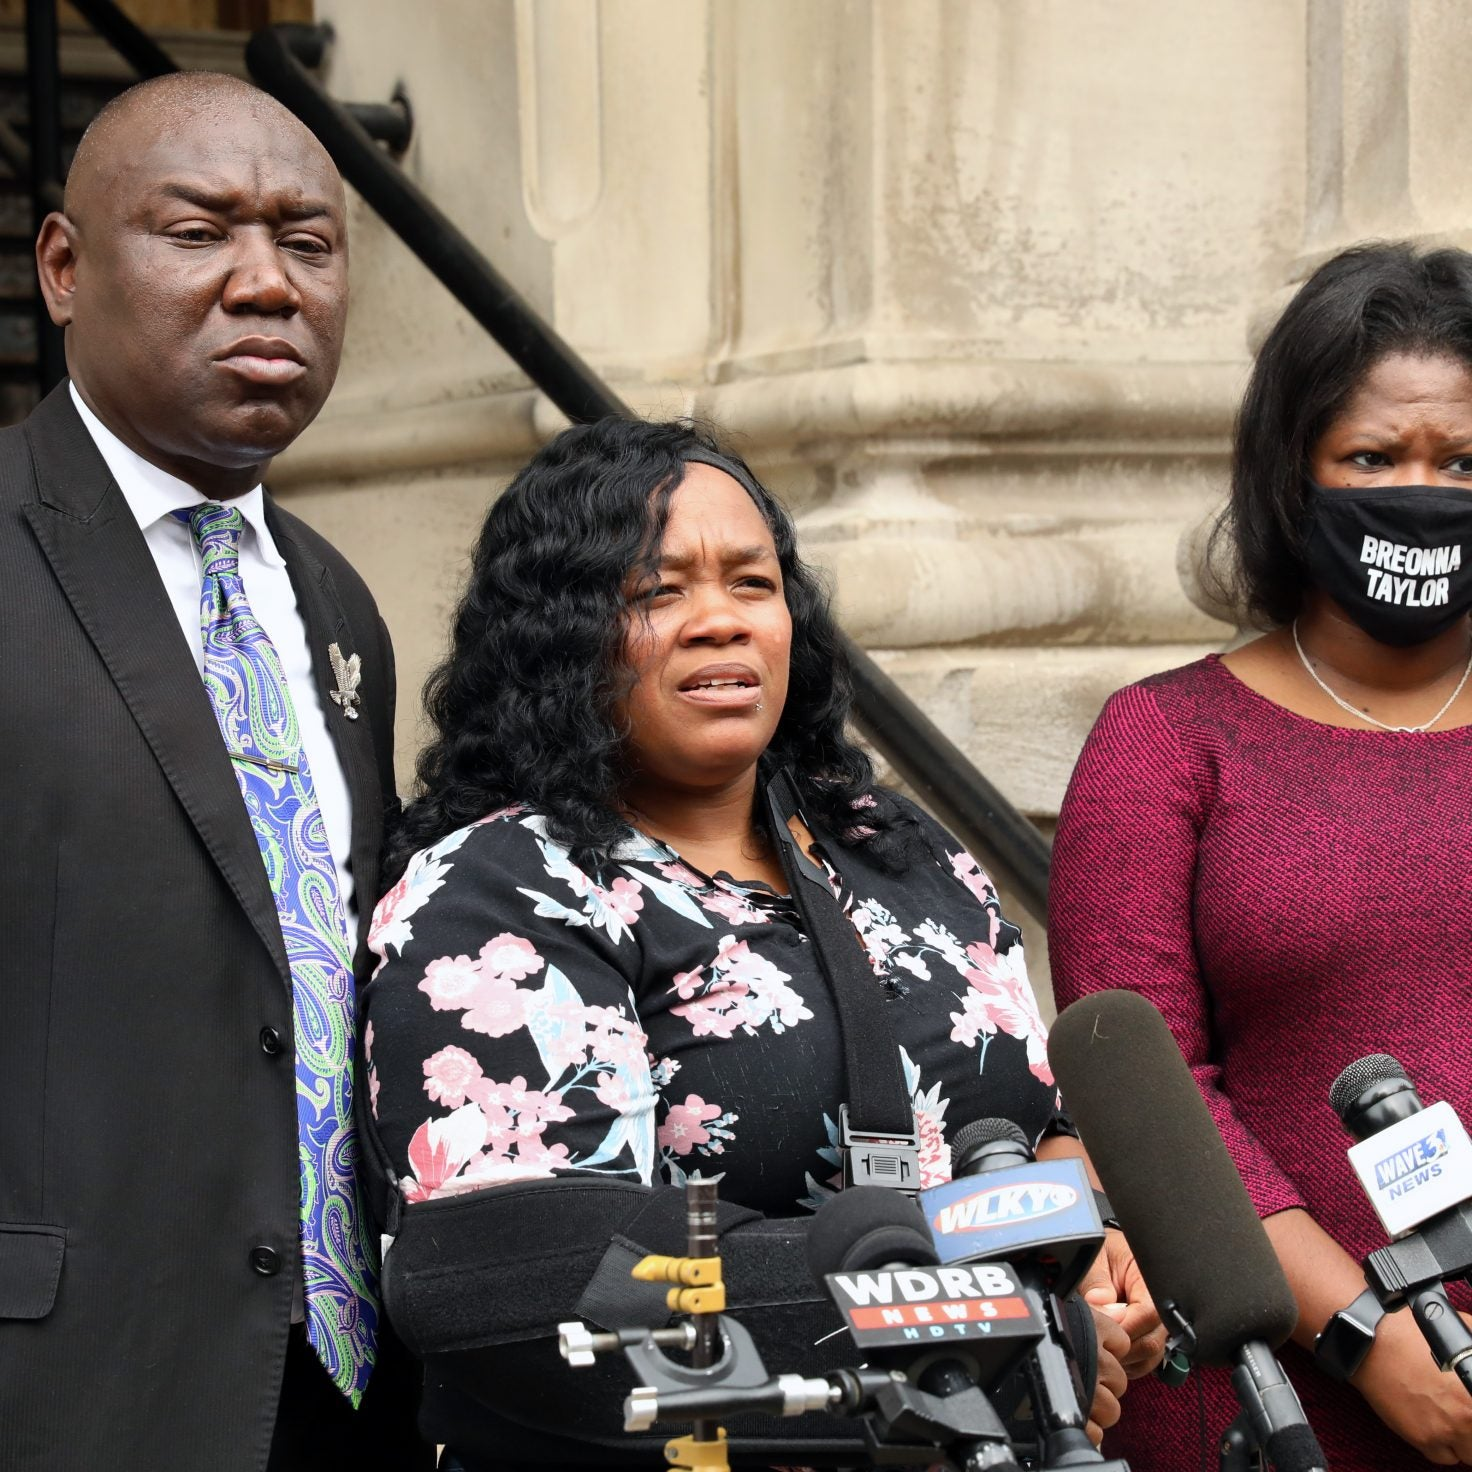 City Of Louisville Reaches $12 Million Settlement with Breonna Taylor's Family